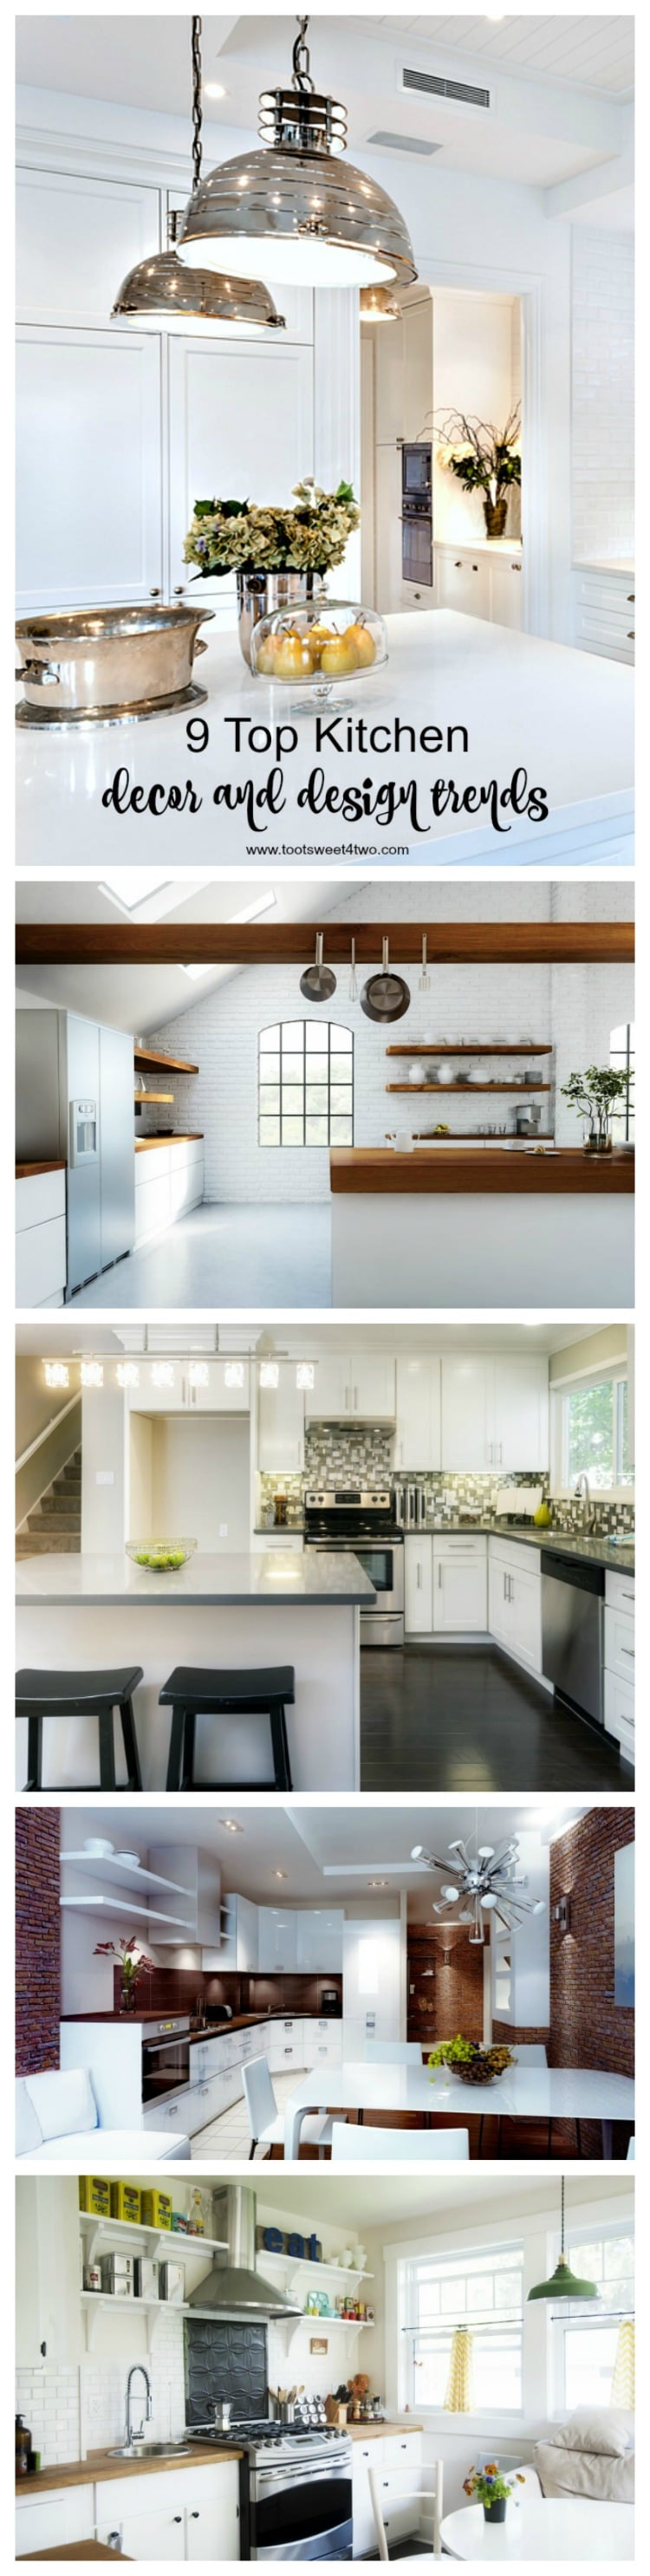 9 Top Kitchen Decor and Design Trends Toot Sweet 4 Two